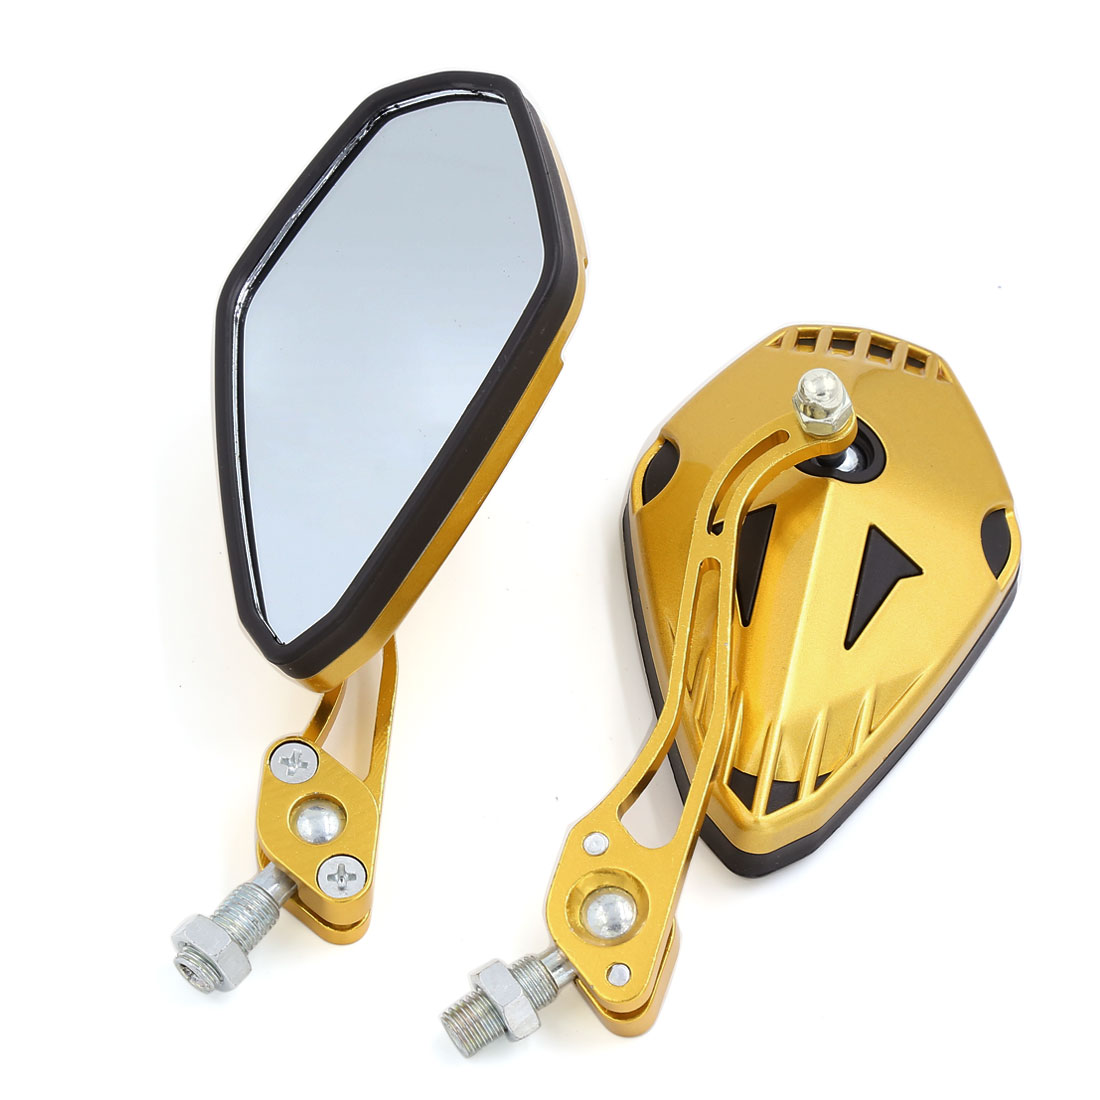 2pcs 10mm Thread Dia 360 Degree Adjustable Motorcycle Rearview Mirrors Gold Tone